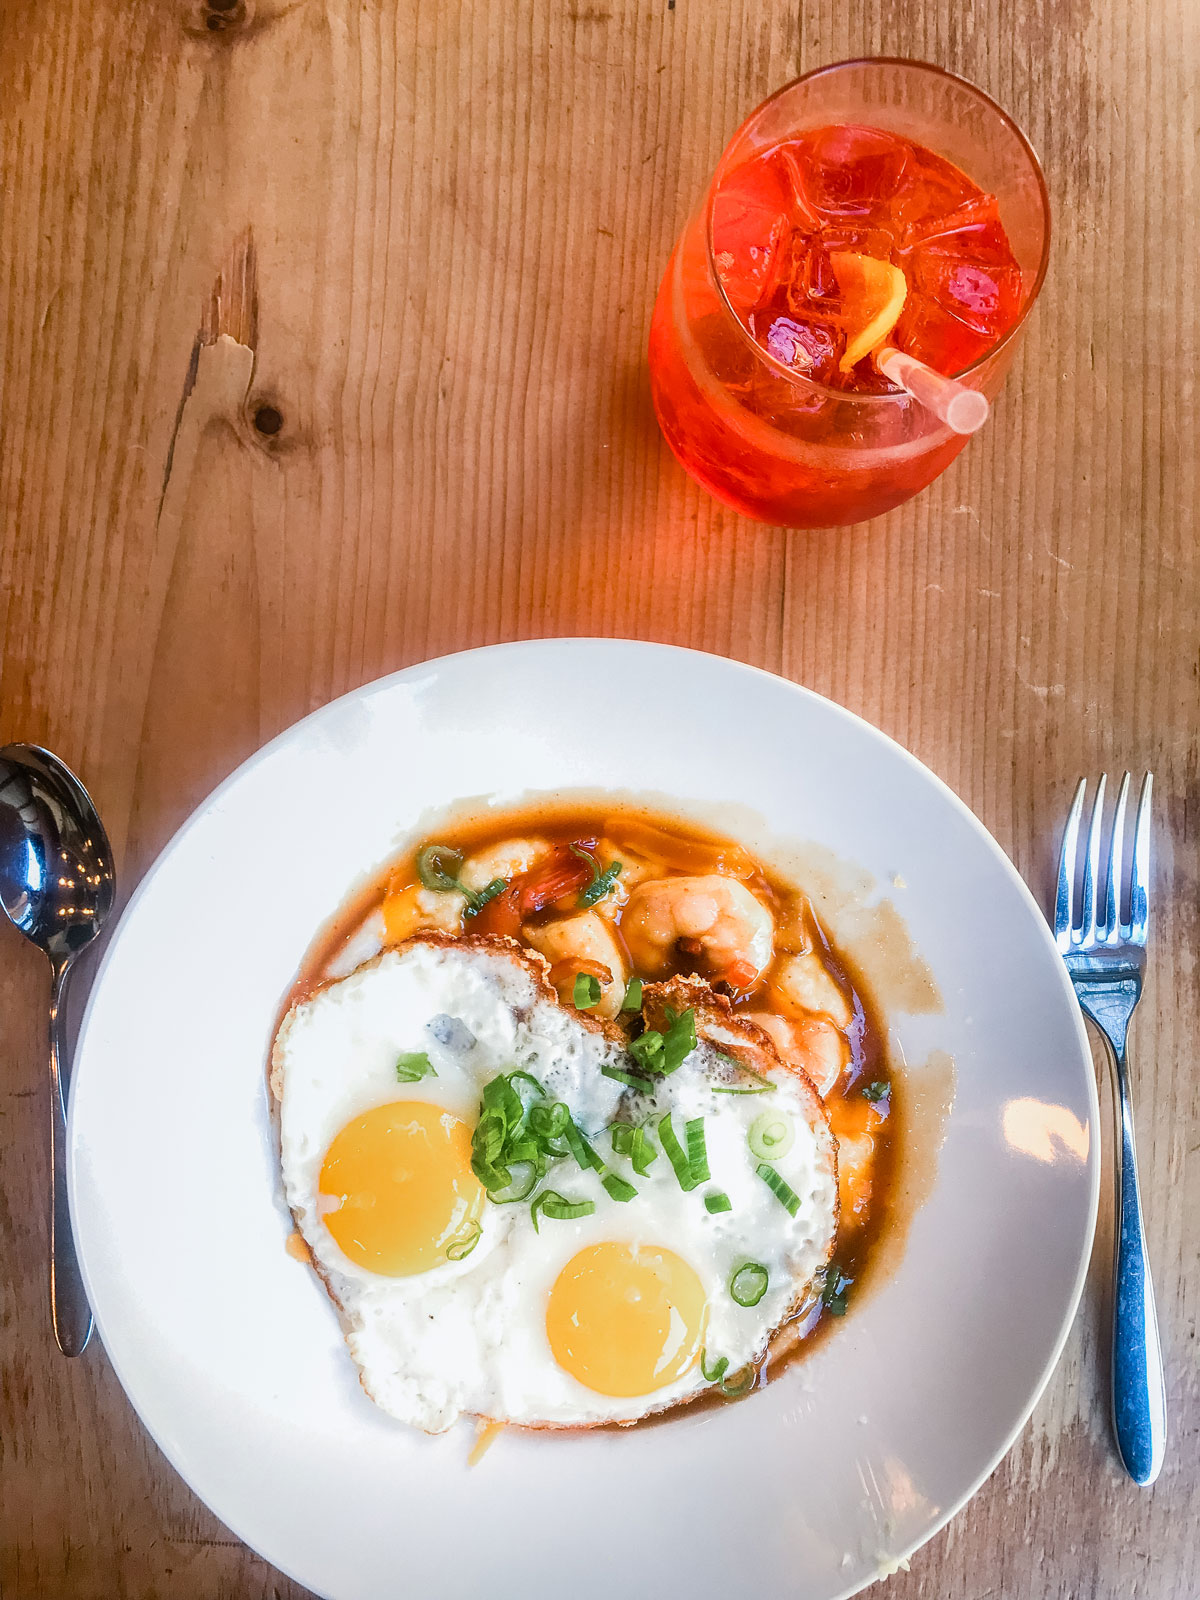 A fried egg resting on top of a bowl of shrimp and grits.